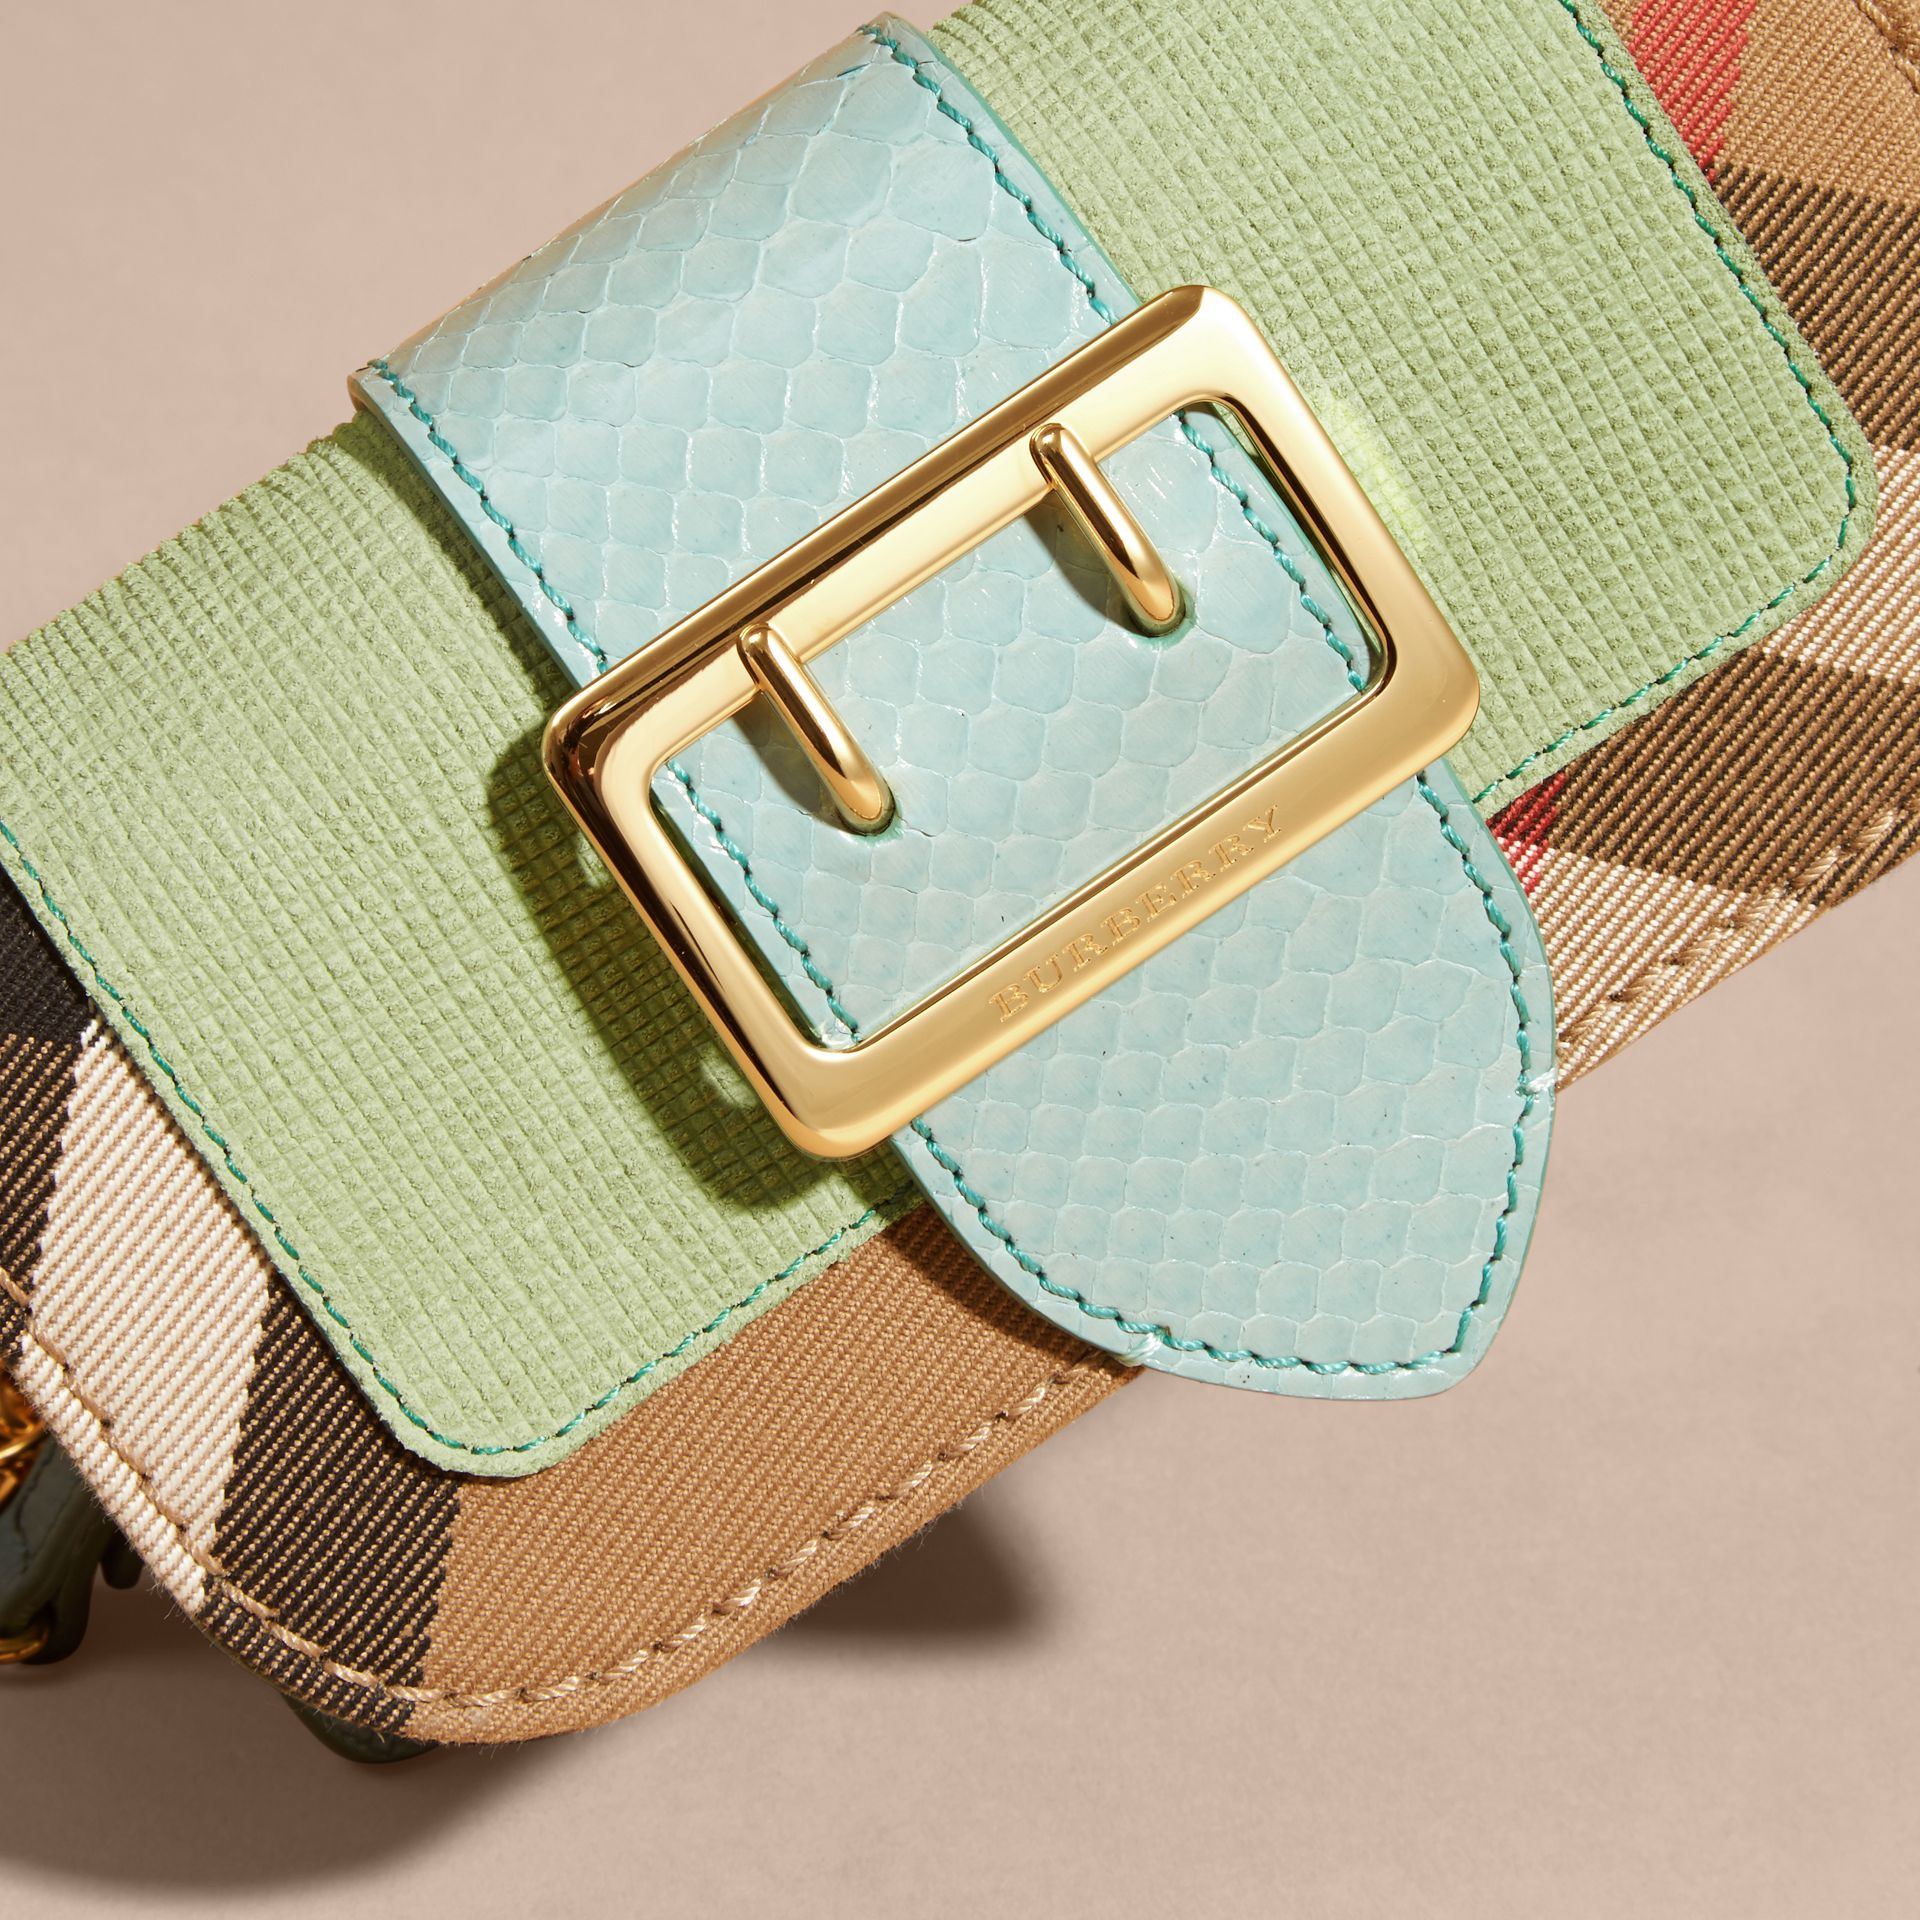 Menta chiaro Borsa The Buckle mini con pelle di serpente e motivo House check - immagine della galleria 2